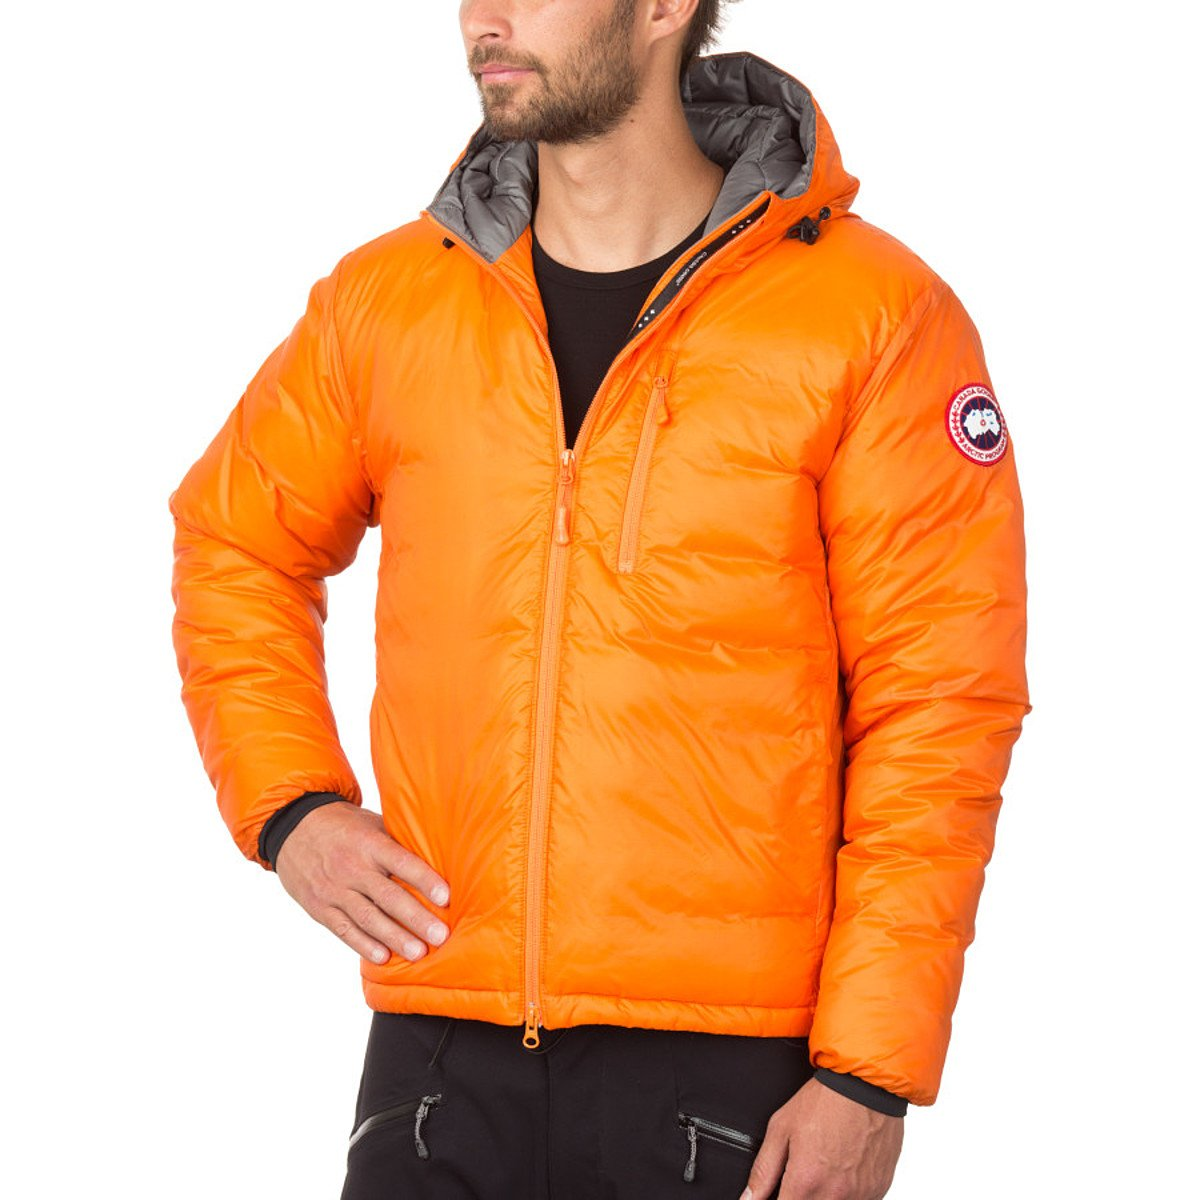 Canada Goose Men's Lodge Down Hooded Jacket hannell across canada – resources